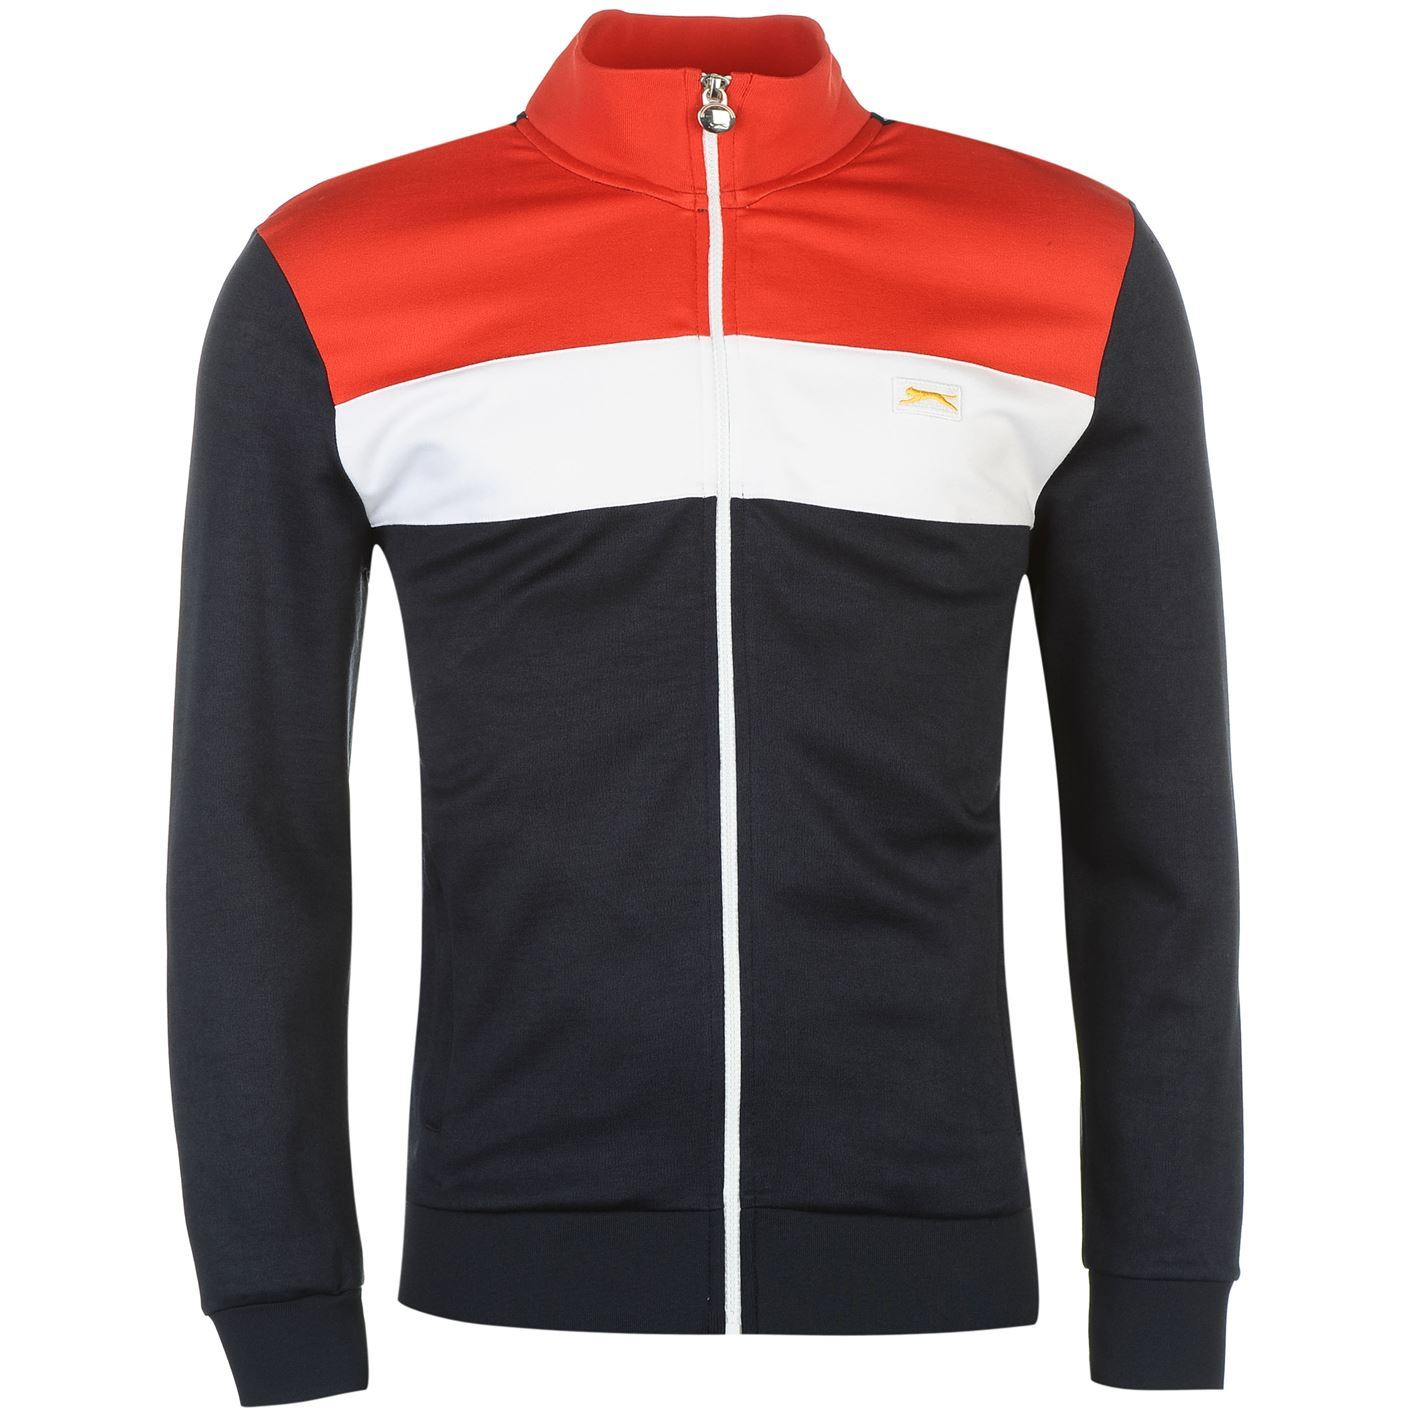 8a6fd7ac397 ... Slazenger Courtside Retro Track Jacket Mens Navy/Red/White Tracksuit  Top ...